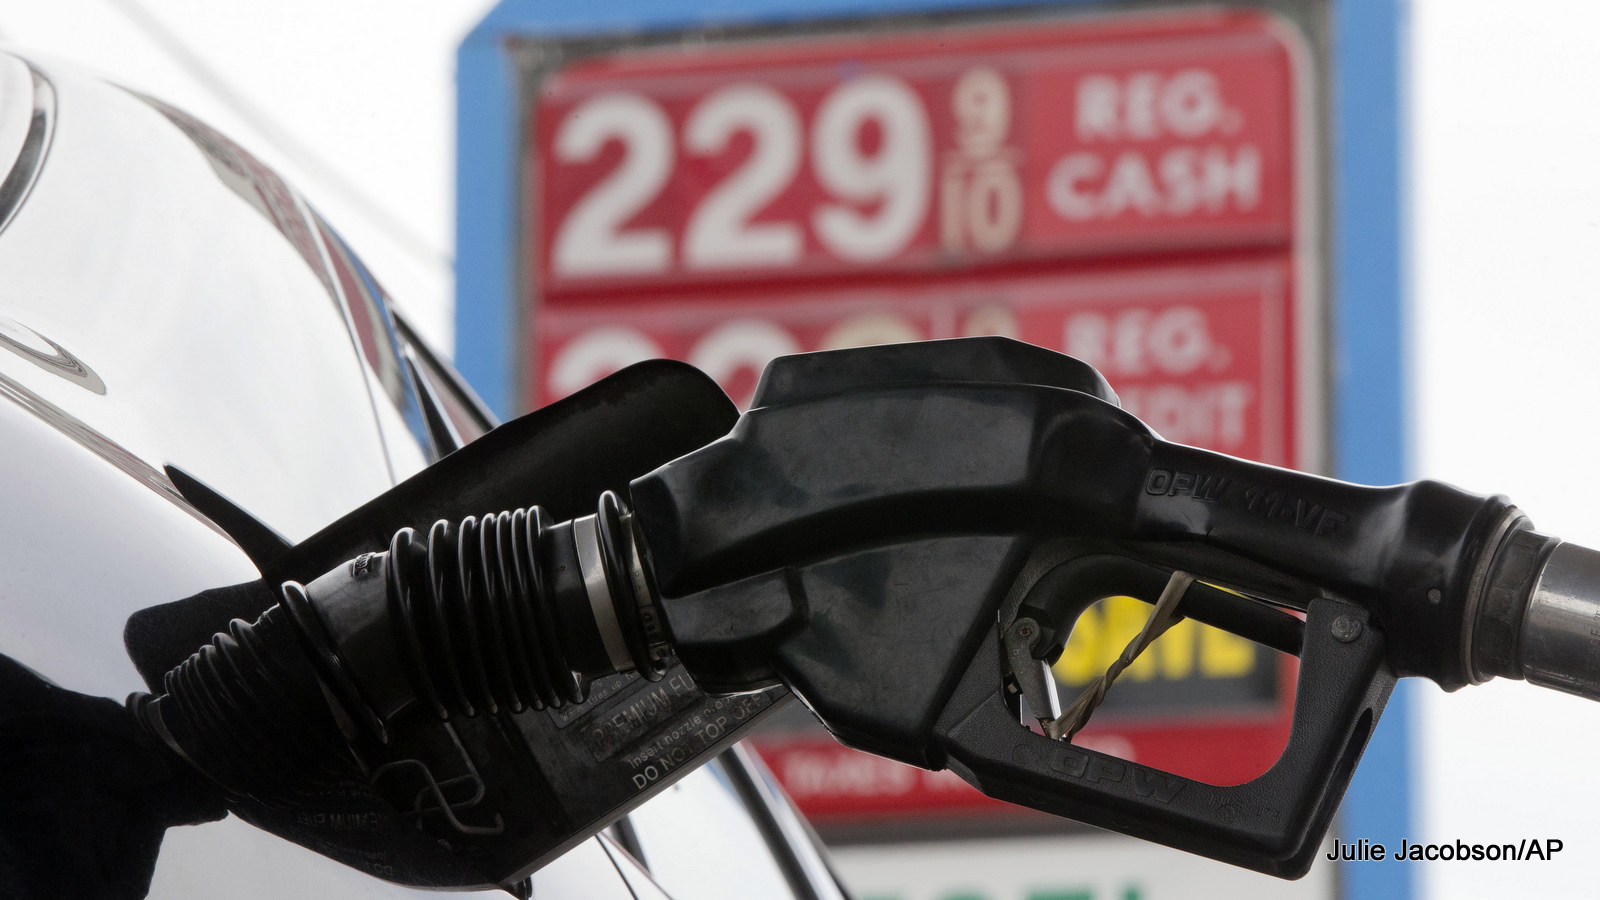 Low Oil Prices Prompt New Interest In Raising Gas Tax, Cutting Subsidies